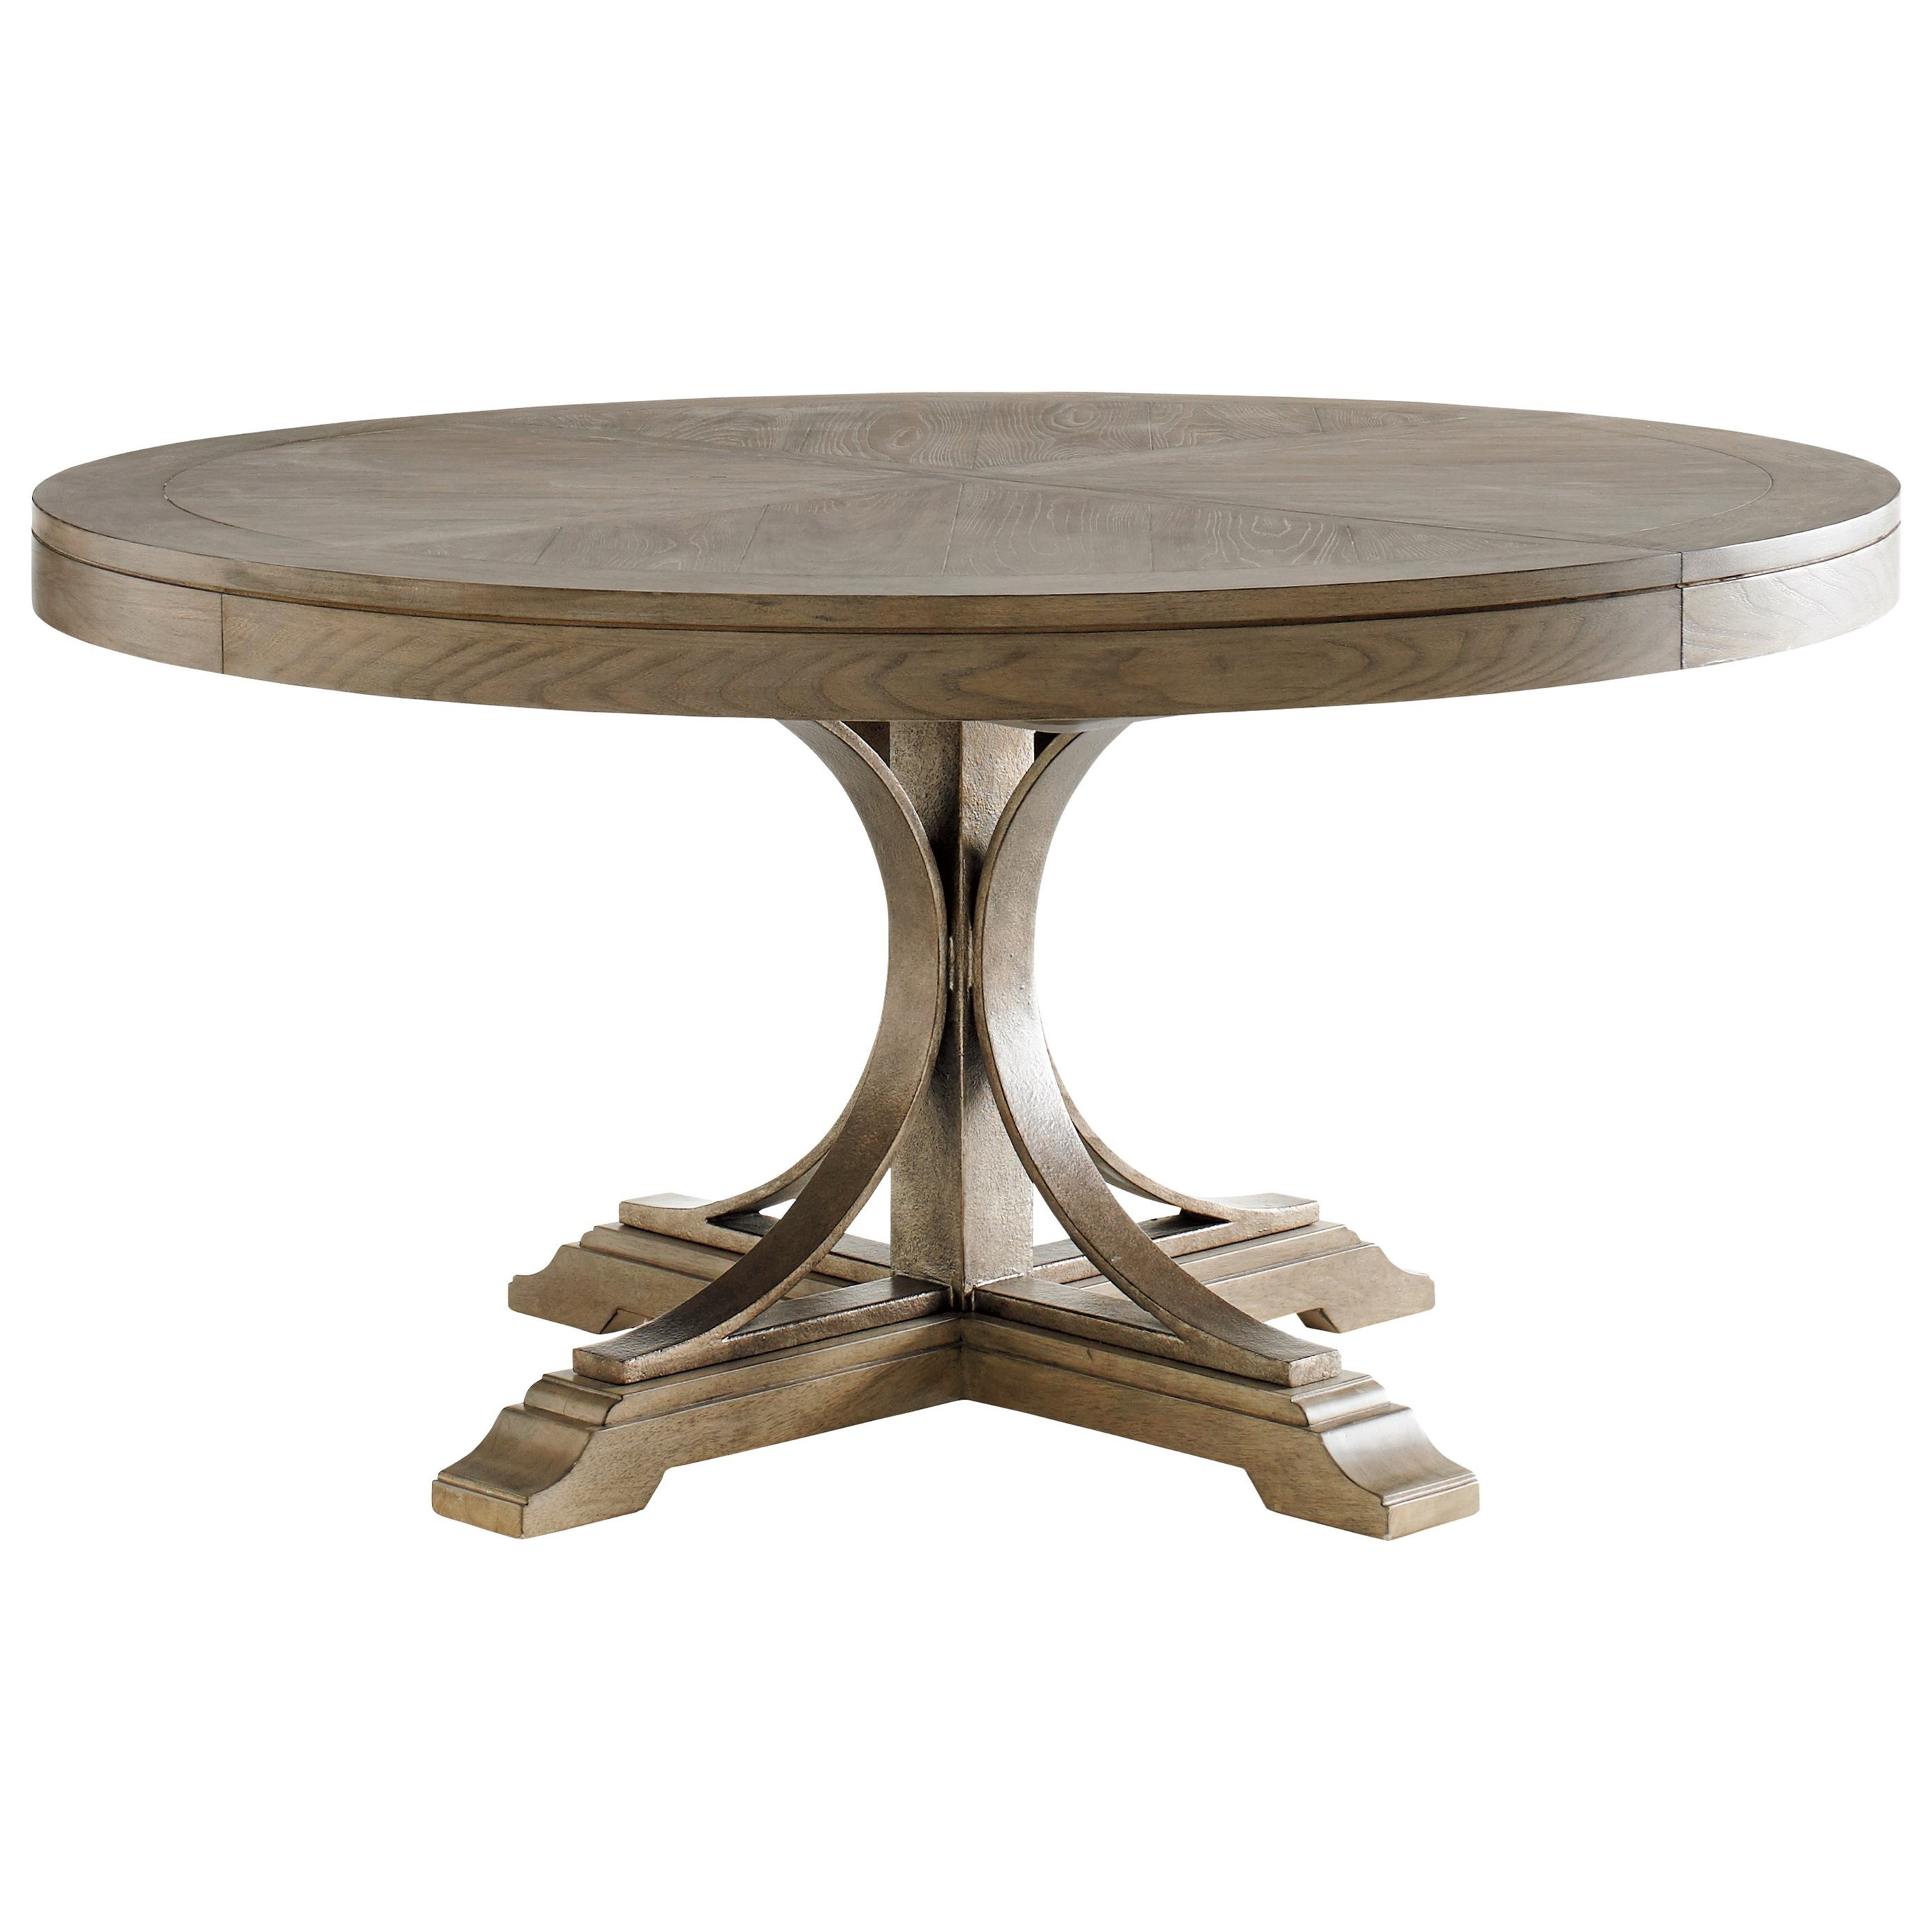 Cypress Point Atwell Round Dining Table by Tommy Bahama Home at Baer's Furniture